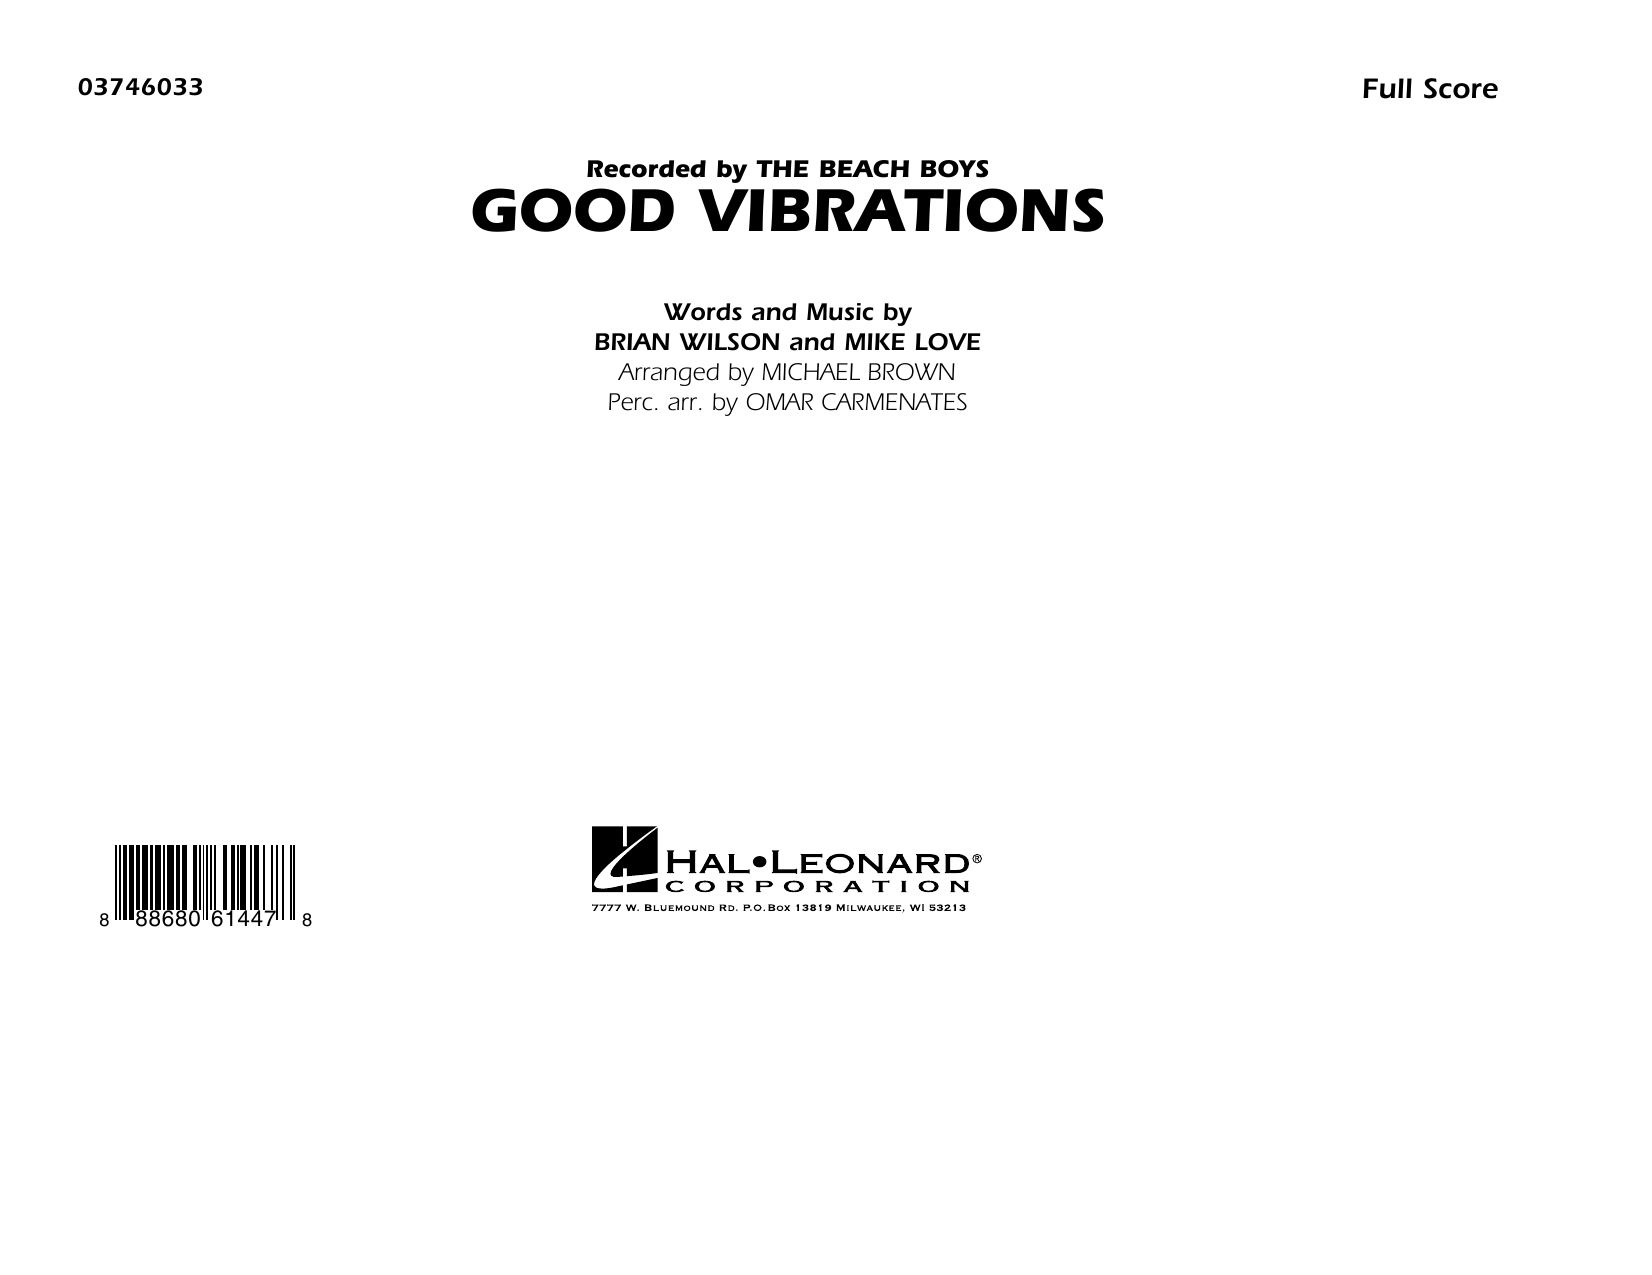 Good Vibrations (COMPLETE) sheet music for marching band by Michael Brown, Brian Wilson, Mike Love and The Beach Boys. Score Image Preview.